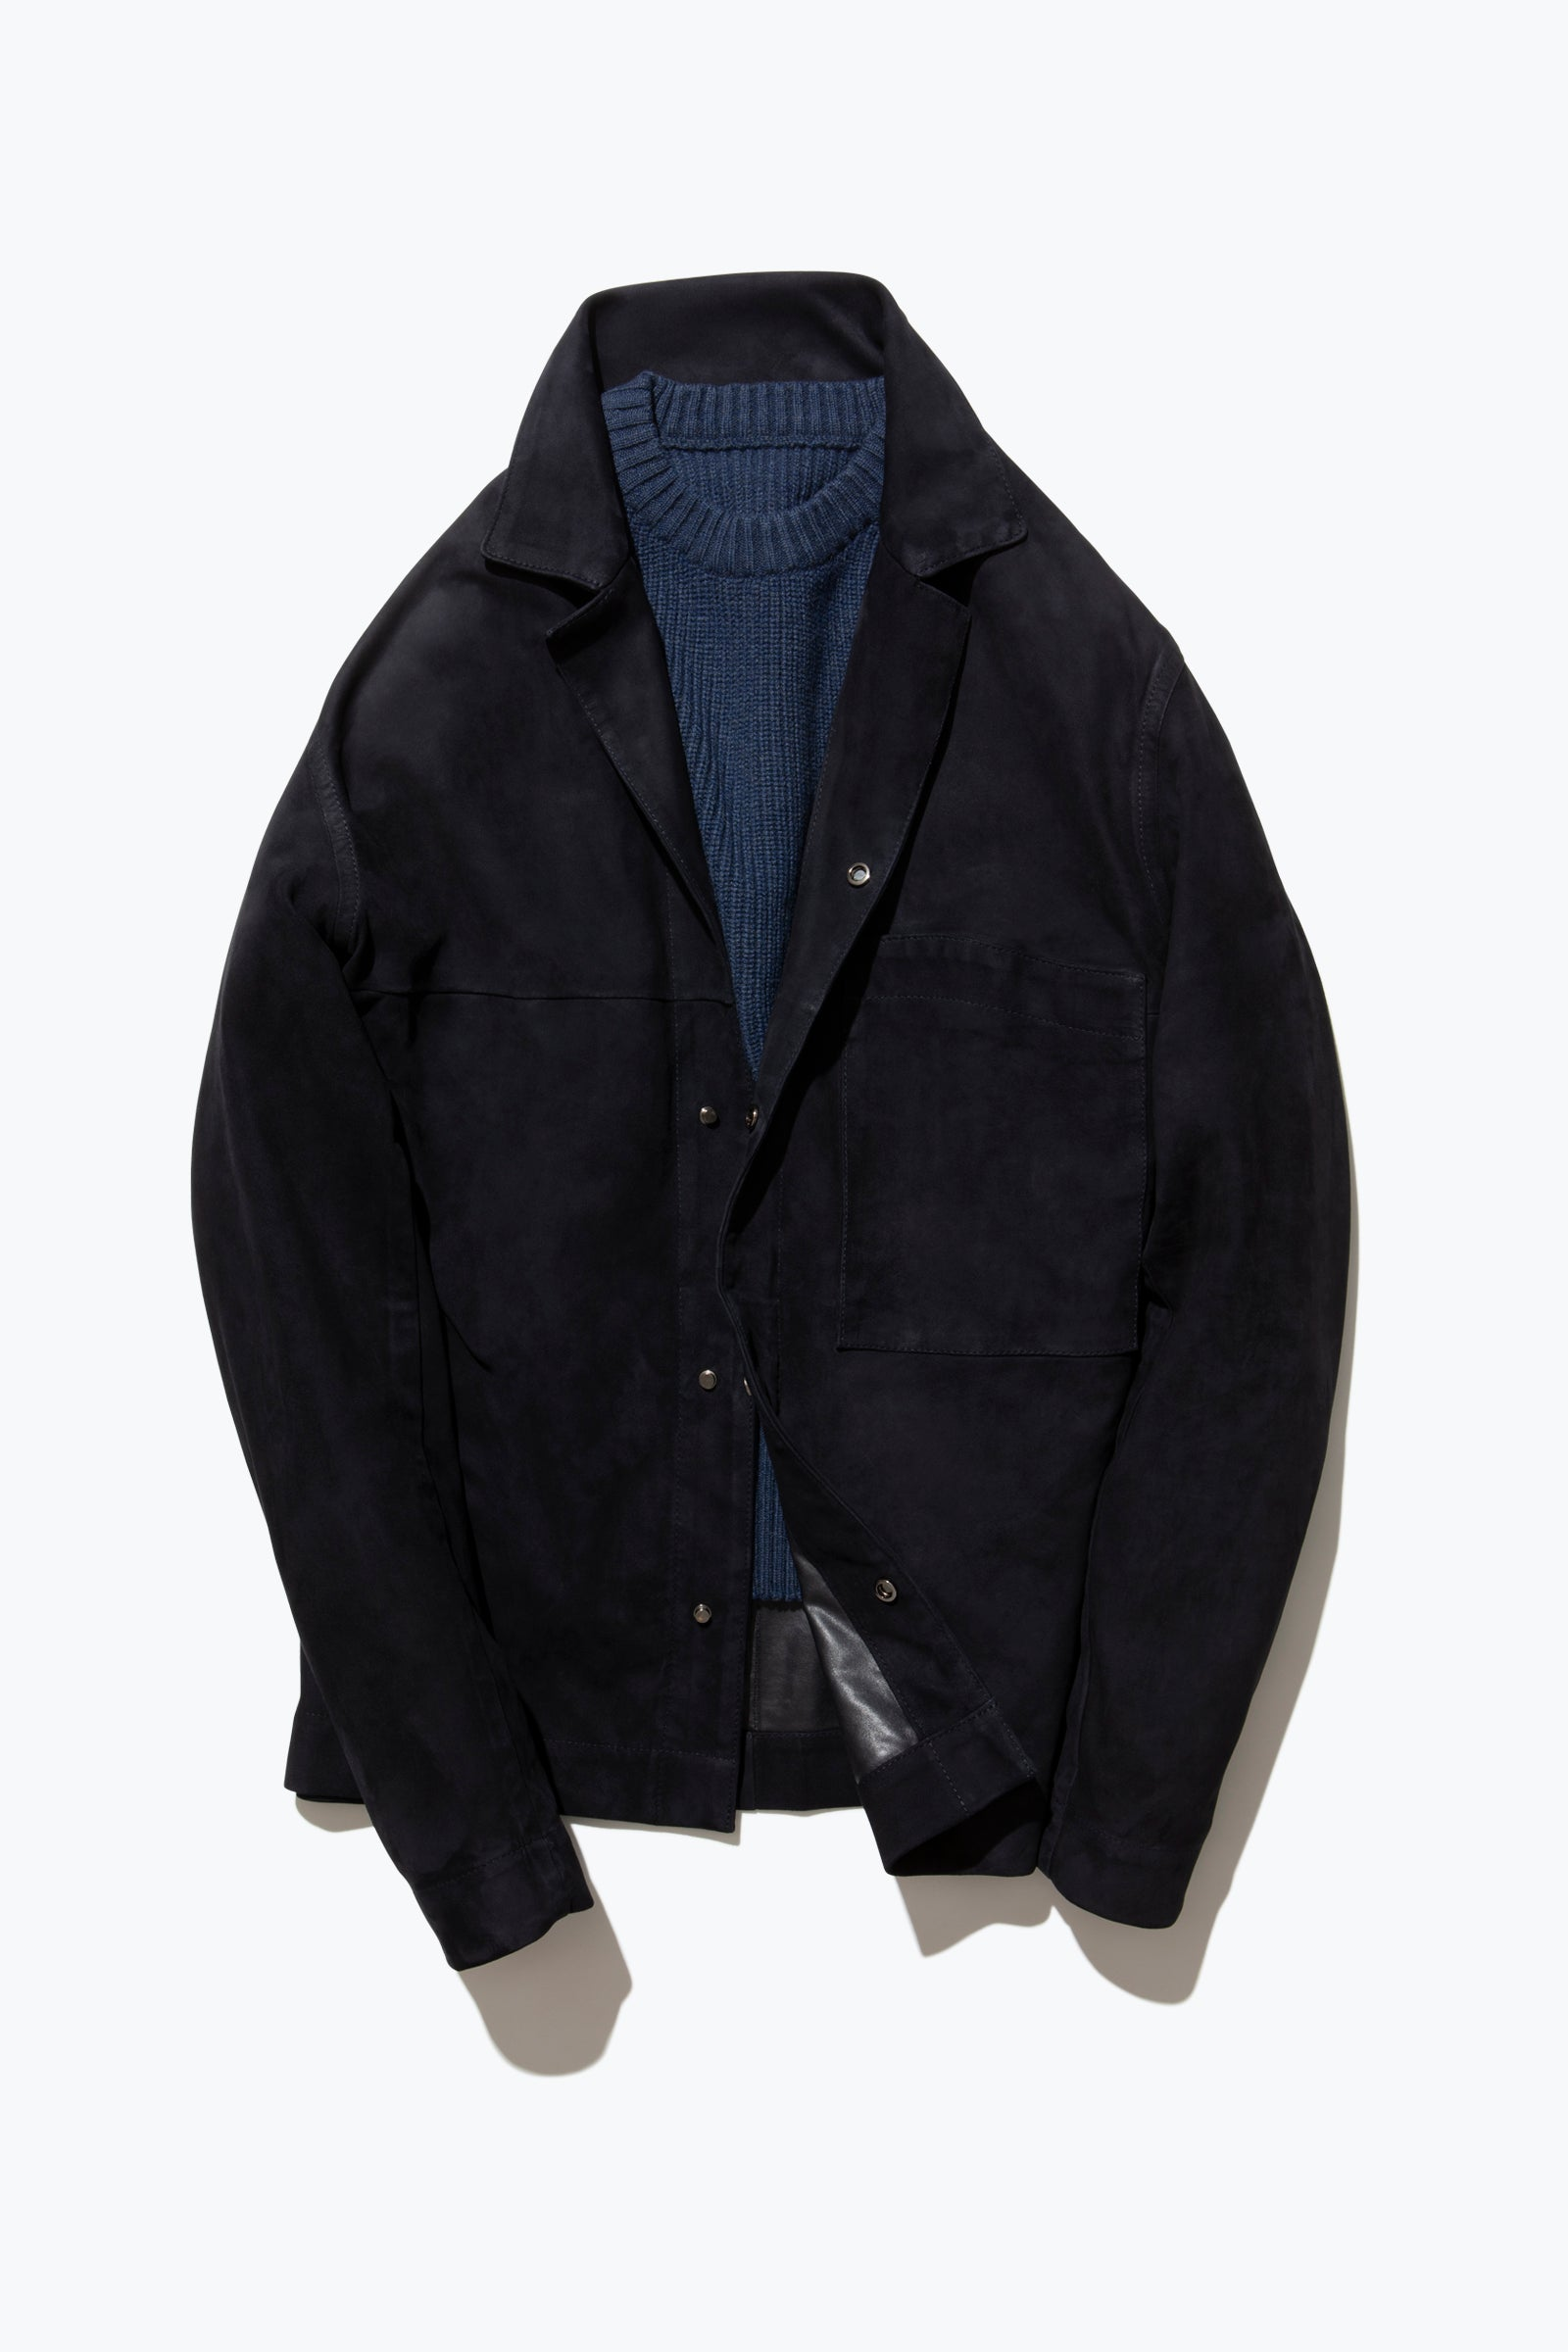 Edition 001 - Suede Overshirt (Navy)